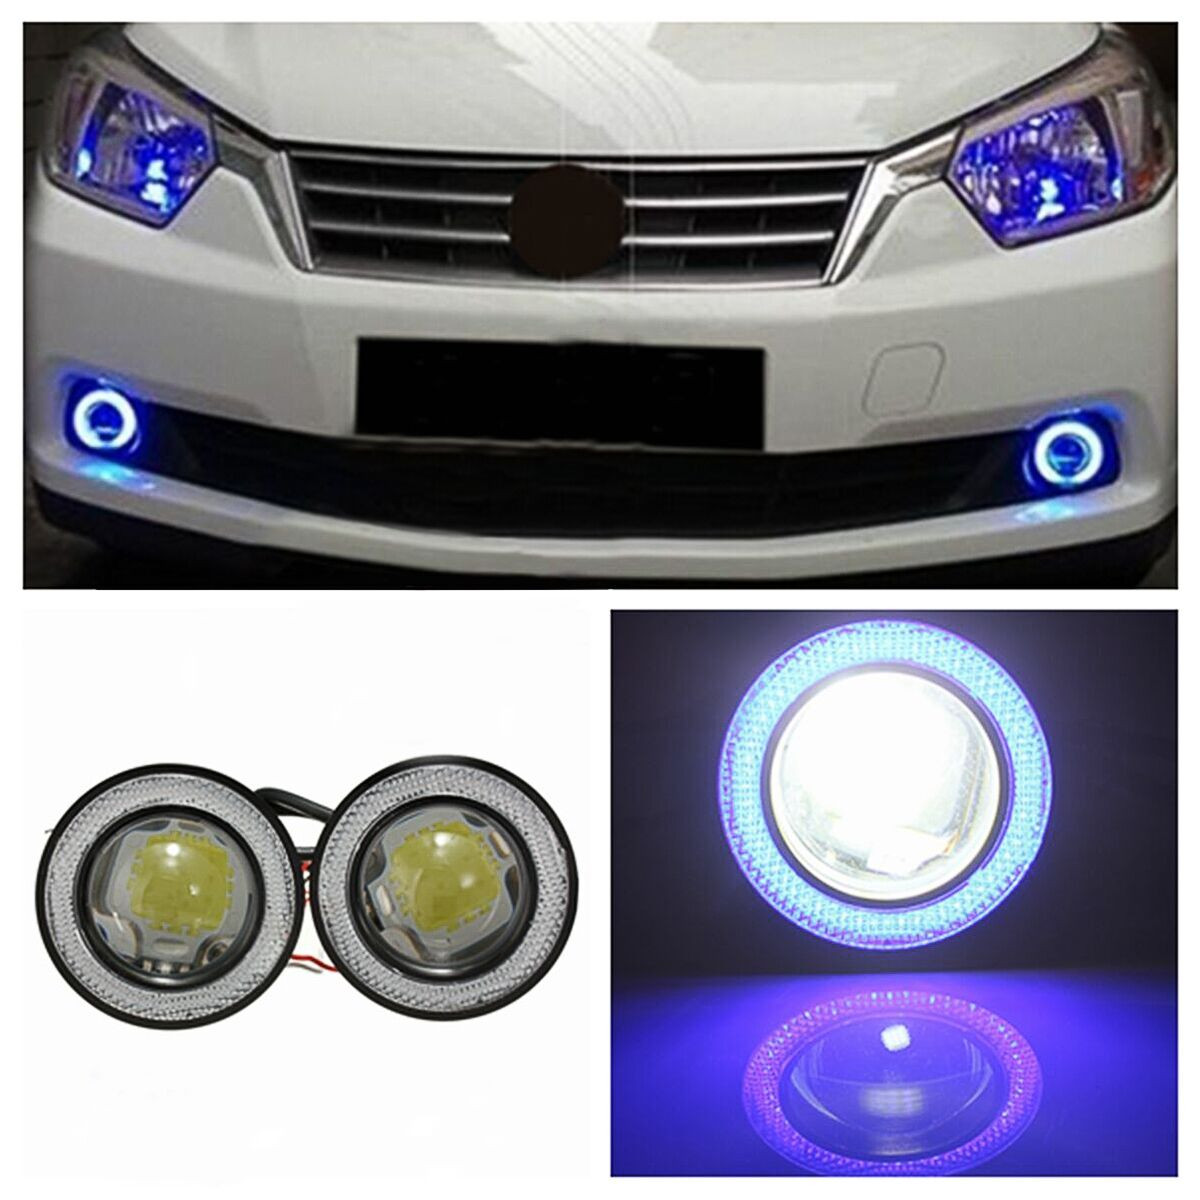 12v 3 led phare antibrouillard projecteur angel yeux anneau lumi re voiture bleu achat. Black Bedroom Furniture Sets. Home Design Ideas